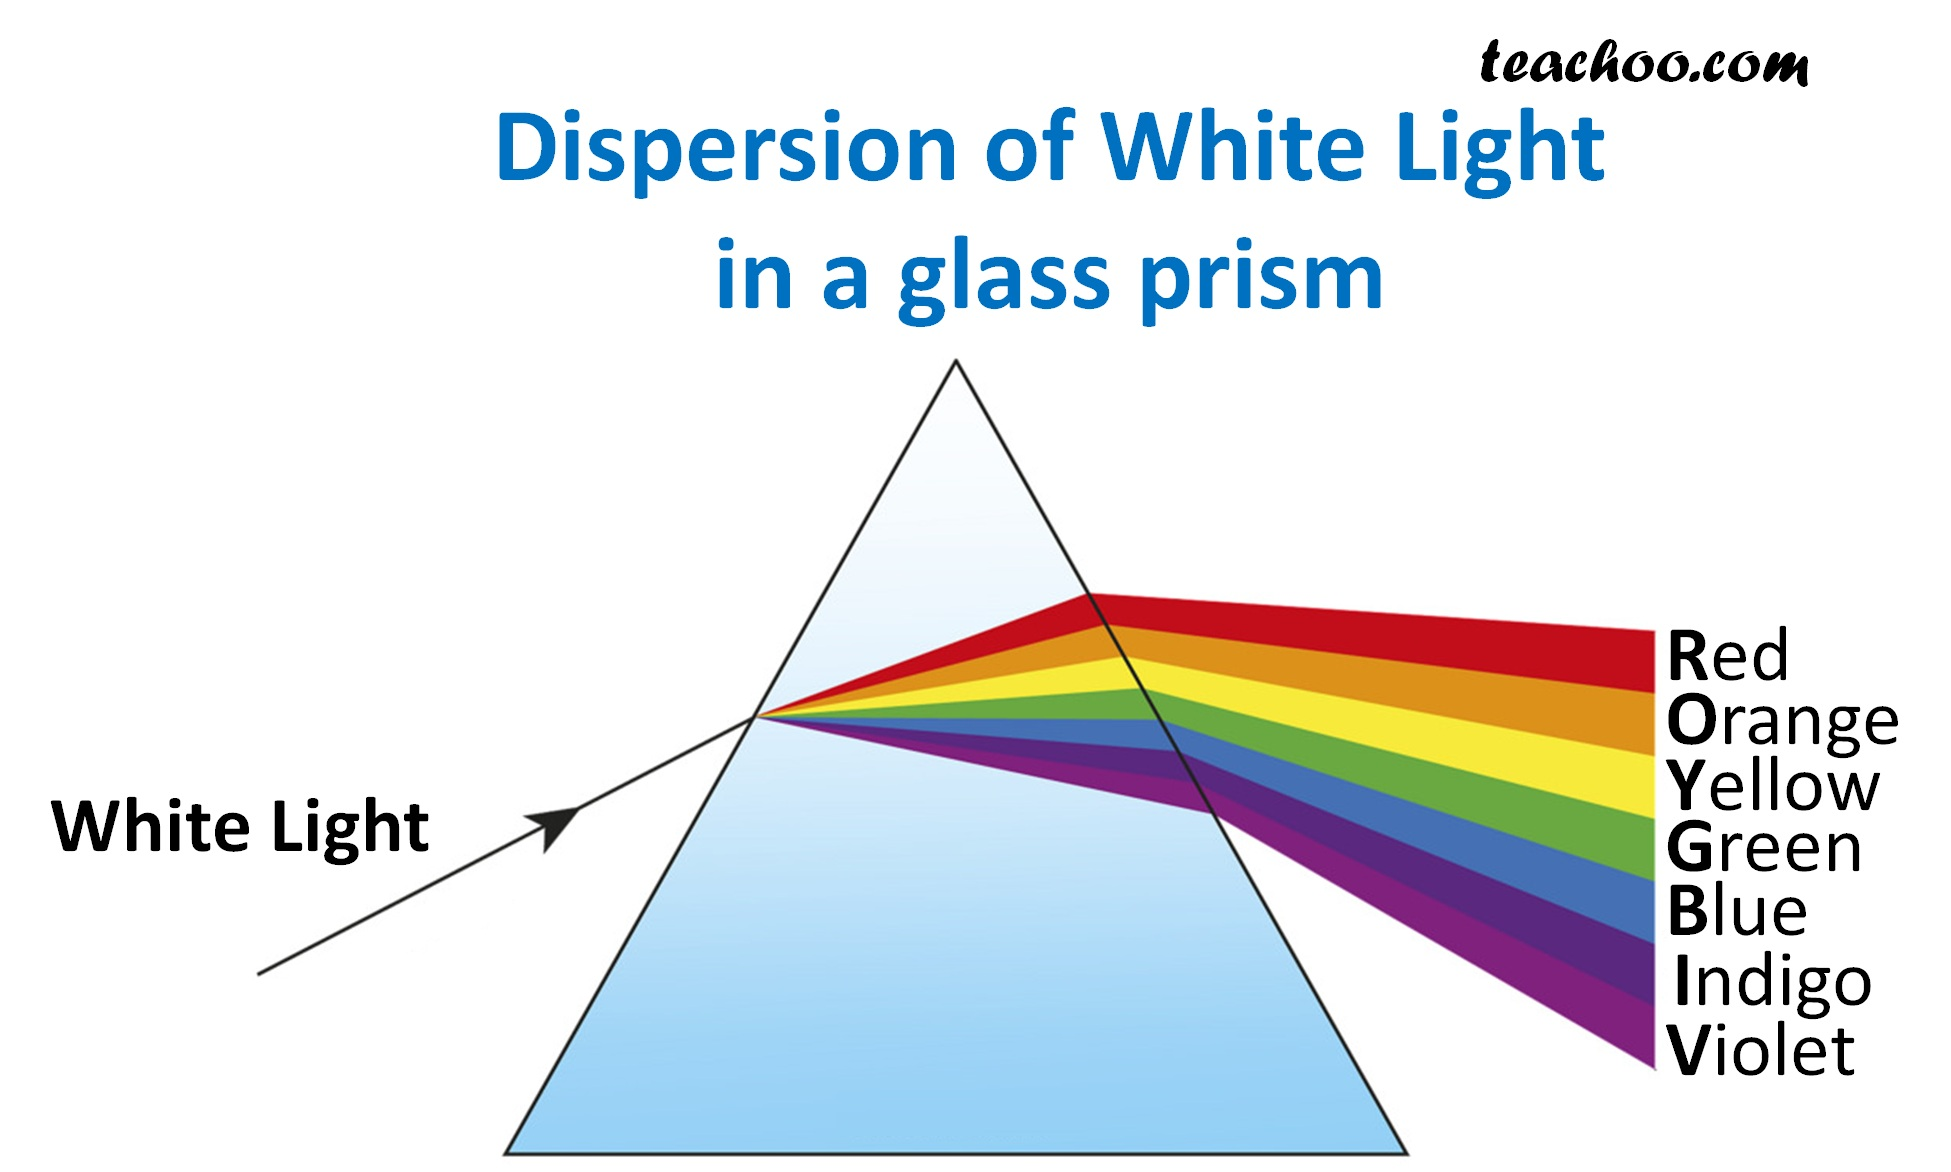 Dispersion of White Light in Glass Prism - Teachoo.jpg